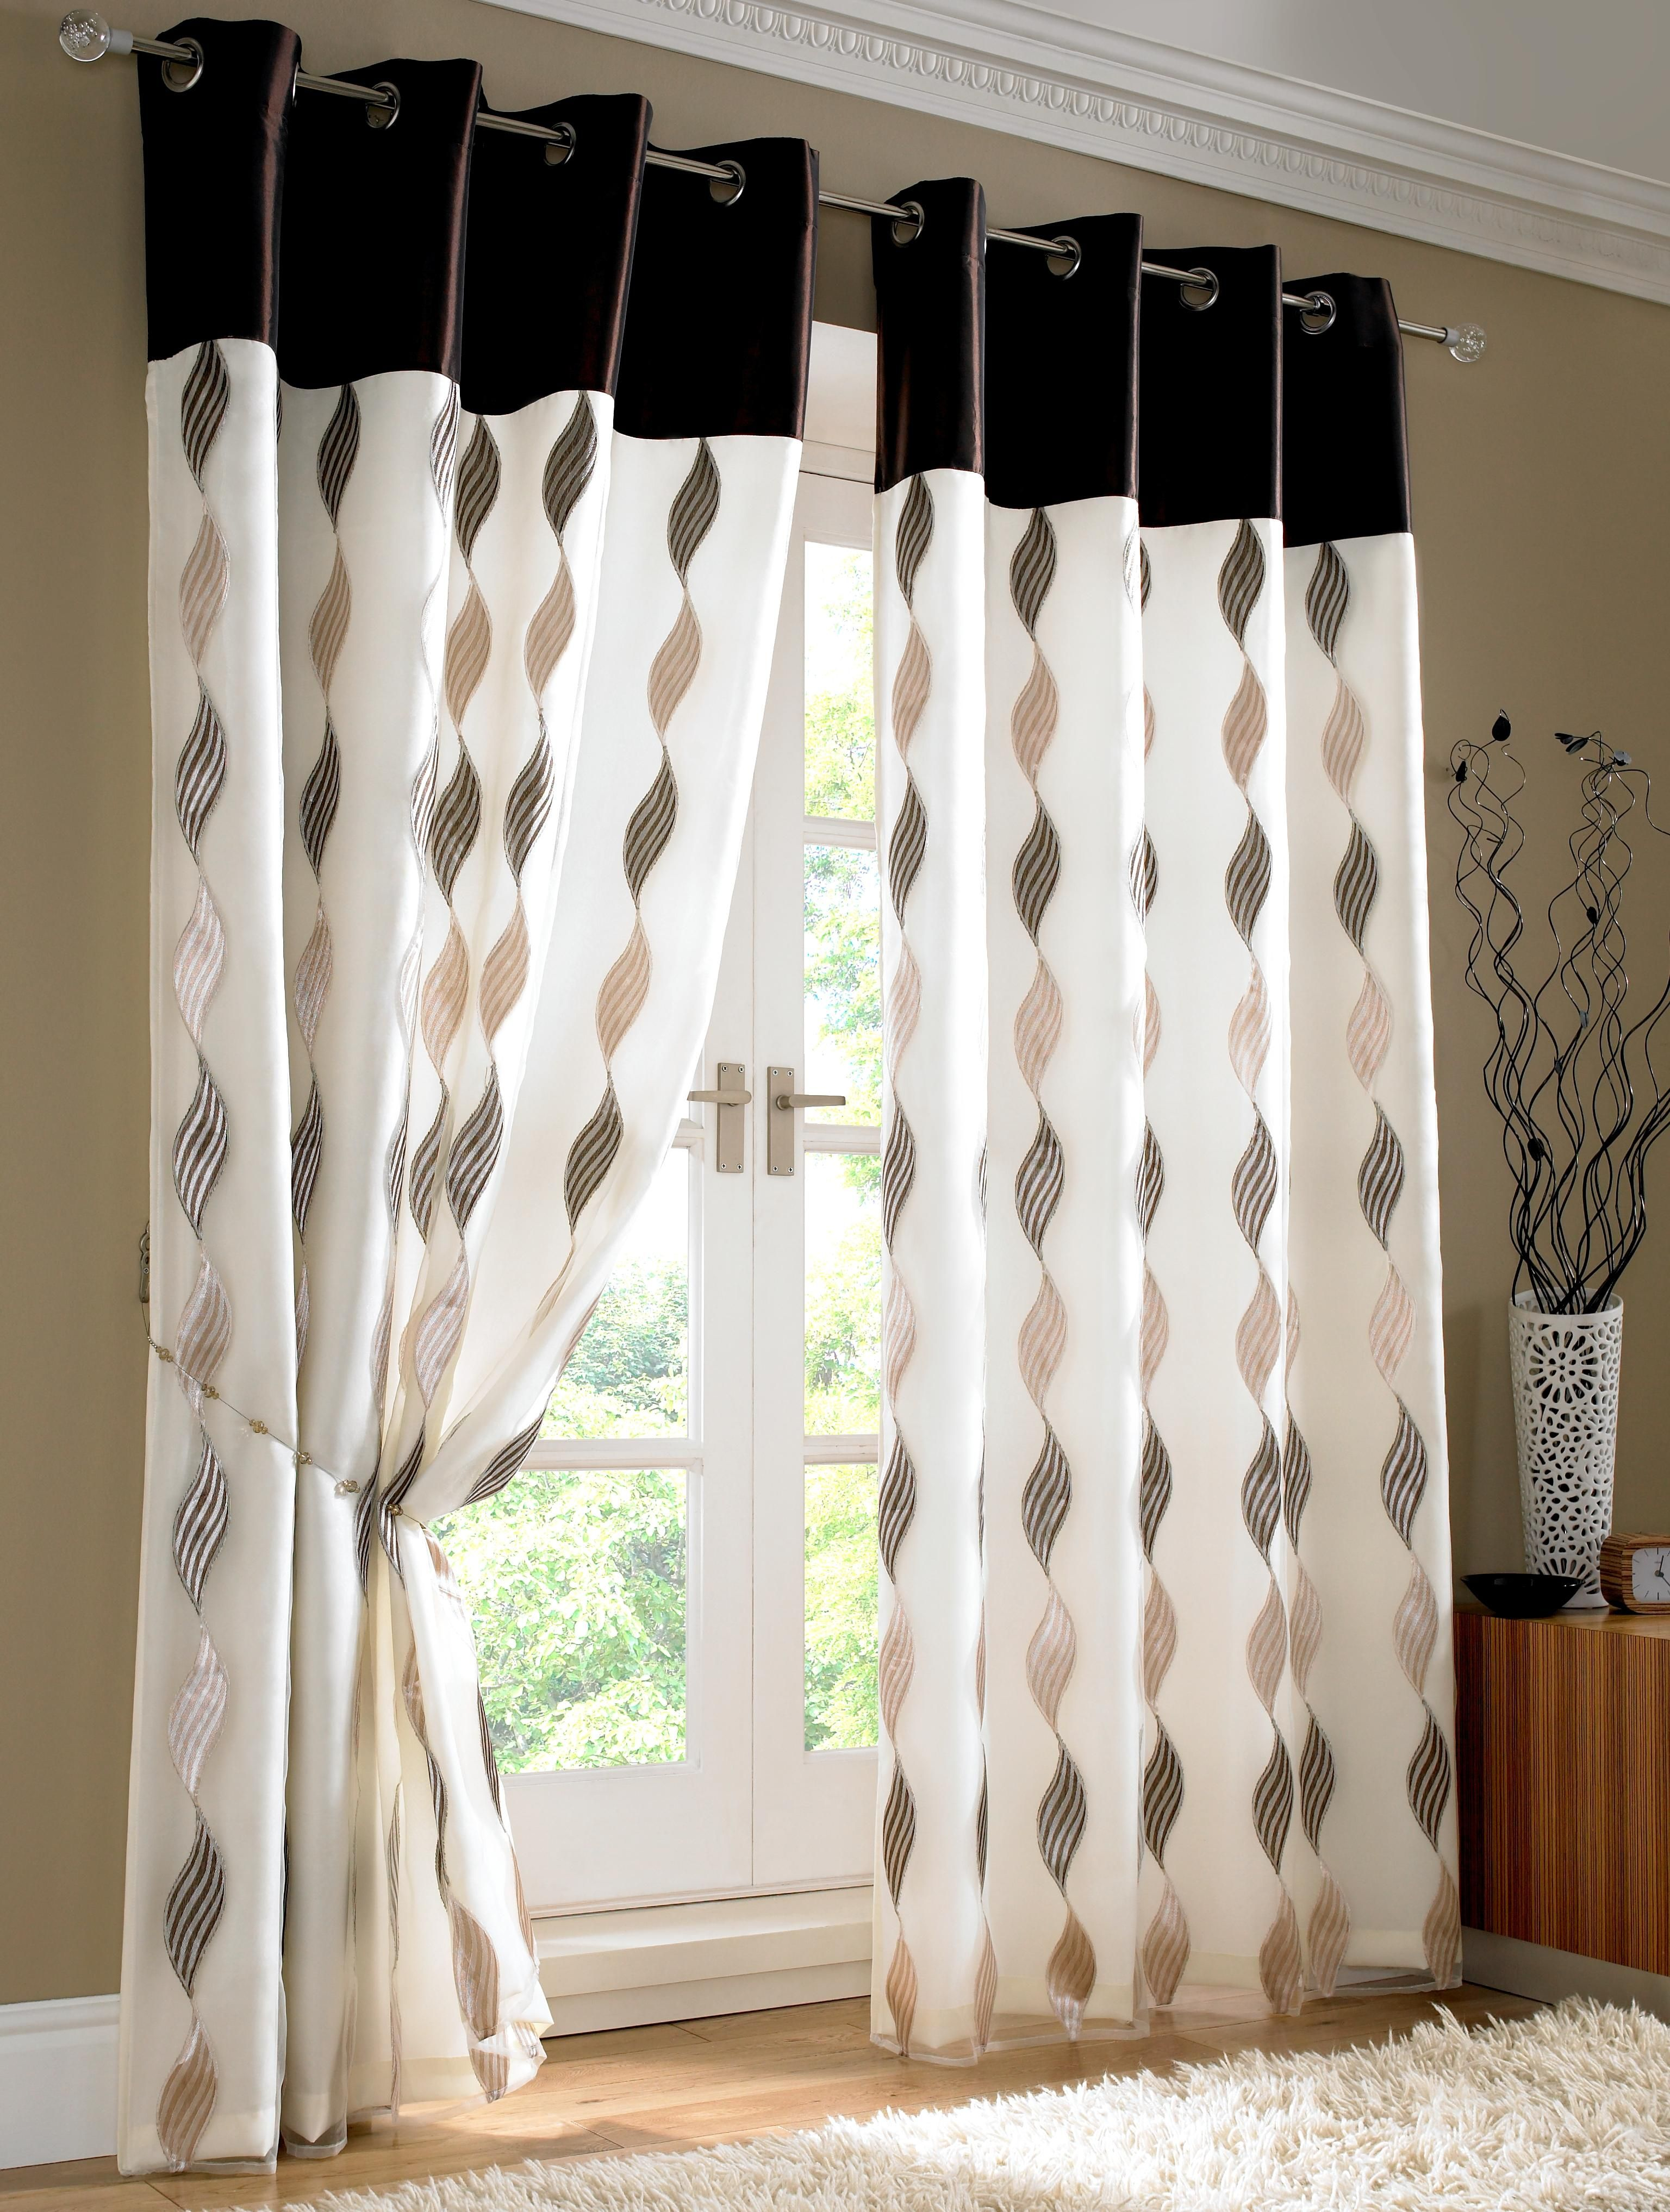 Buy Draperies When Buying Designer Curtains Drapery Room Ideas Window Treatments